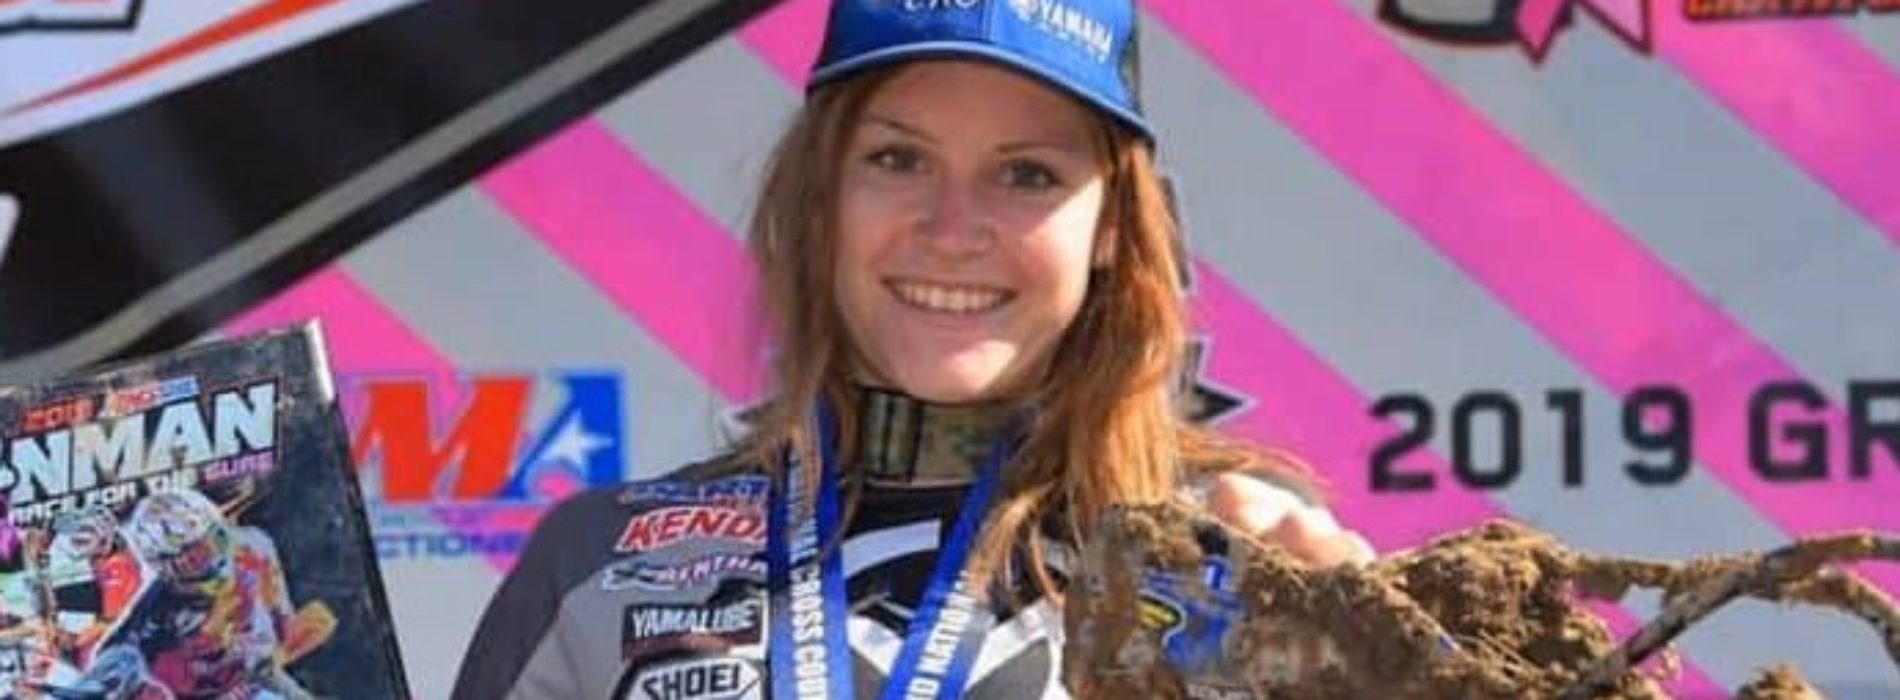 Rachael Archer finishes extraordinary GNCC WXC debut season- there's no stopping the 17 year old now!